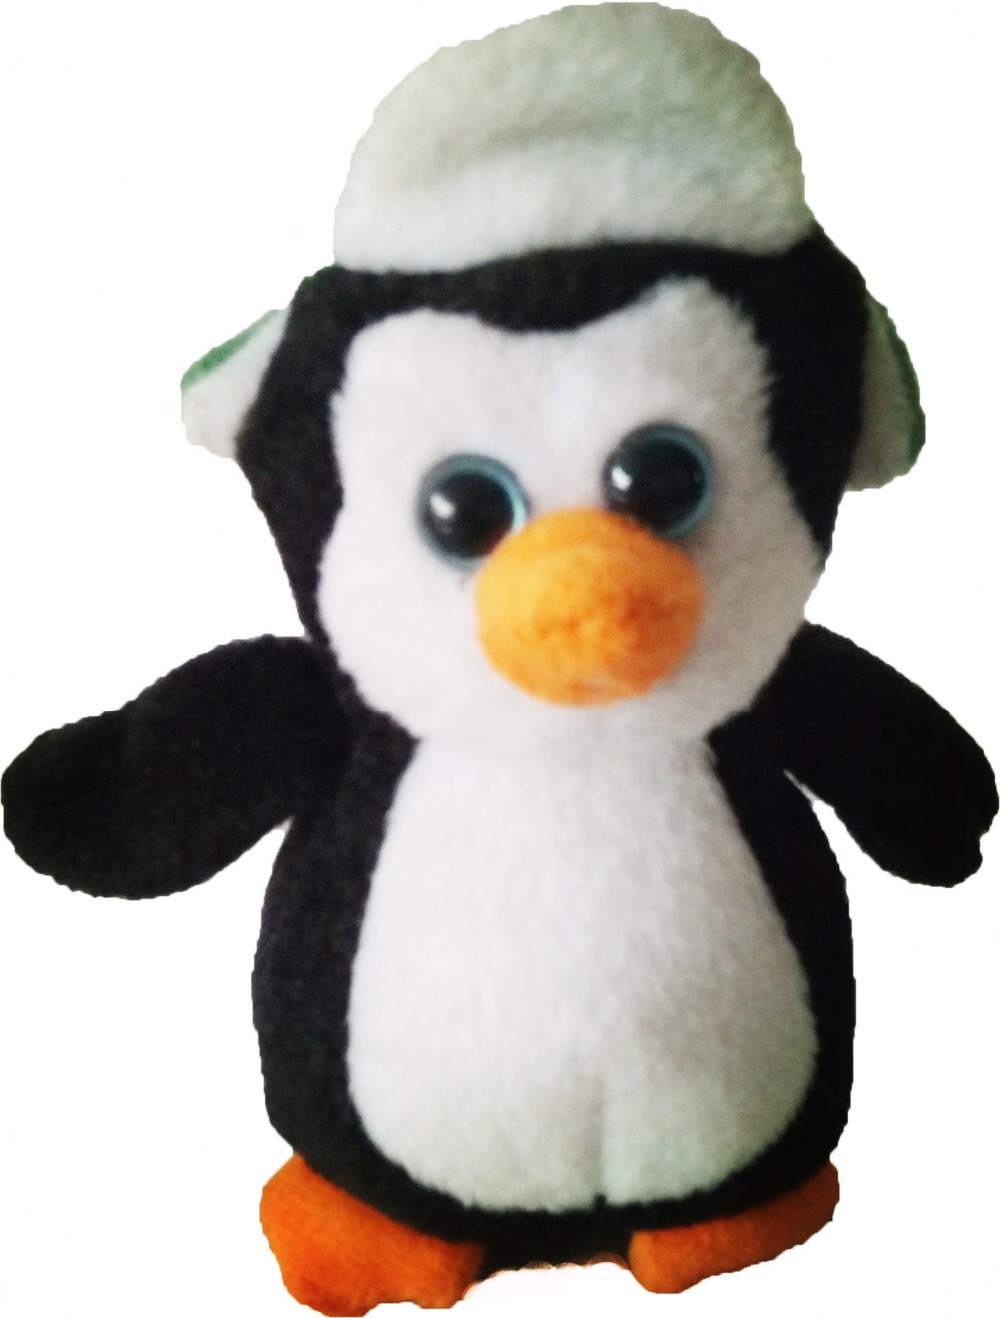 480cb921826 TY Beanie Boos penguin with hat doll Stuffed Plush Animals one piece about  10cm Soft Mini lovely troll doll kids toy hot toy-in Stuffed   Plush  Animals from ...